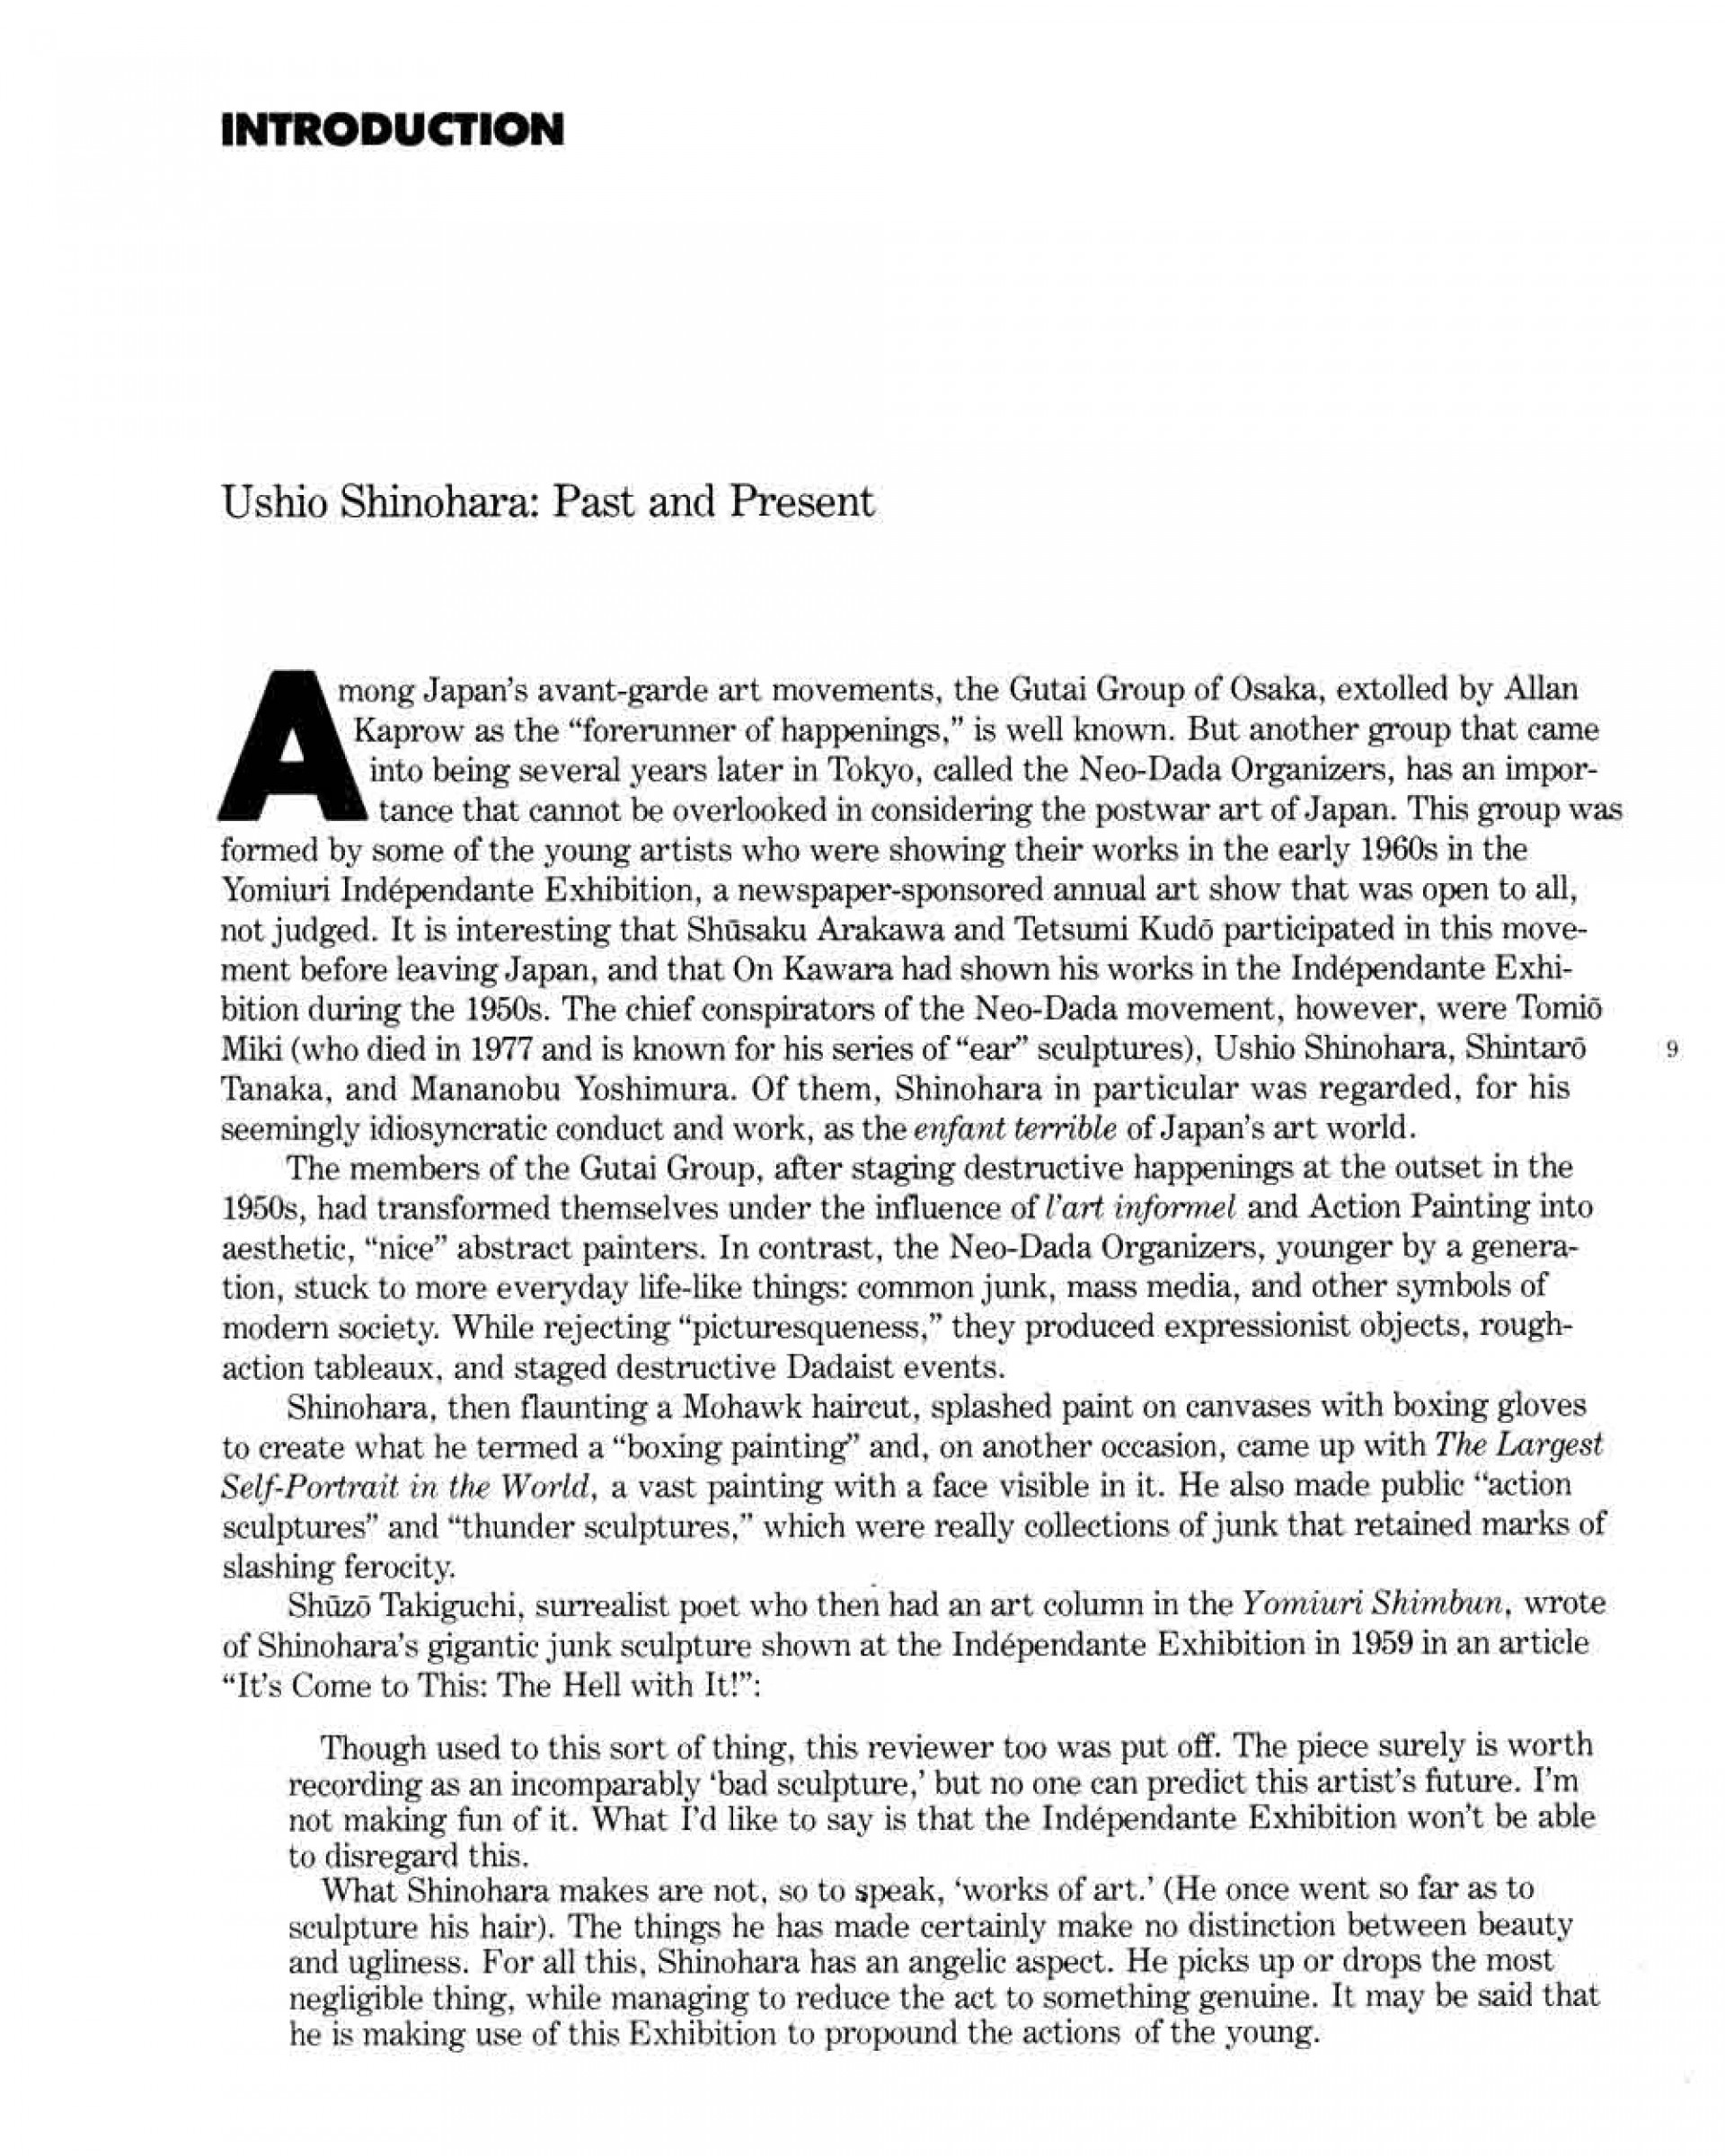 018 Essay Example How To Cite An In Apa Ushio Shinohara Past And Present Pg 1 Wonderful Online Research Paper Using Unpublished Conference 1920